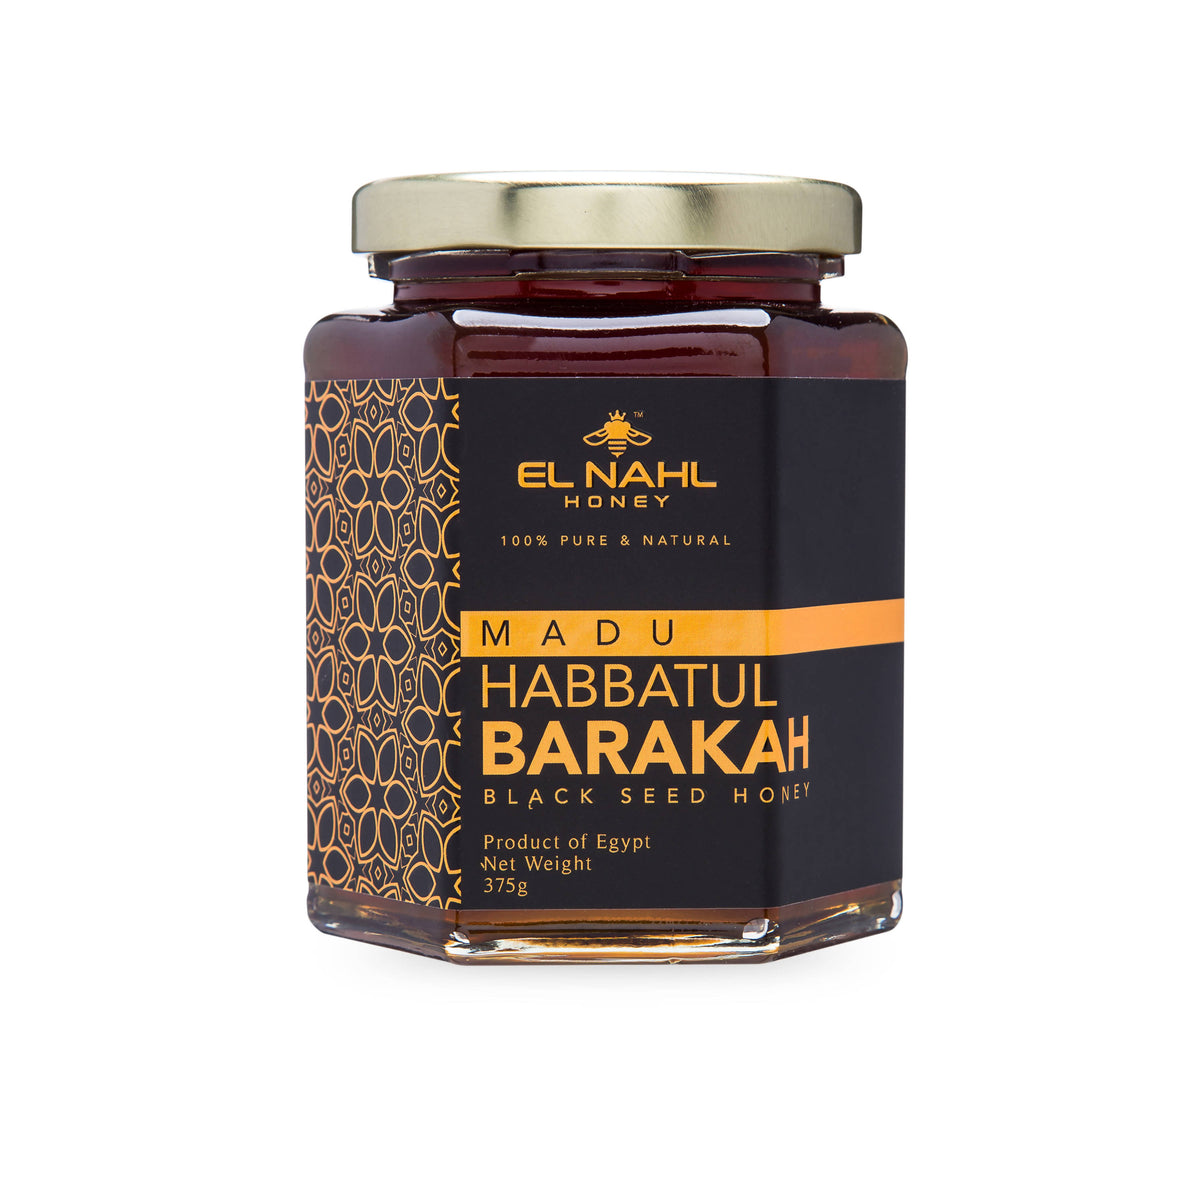 2x (Regular) Habbatul Barakah Honey